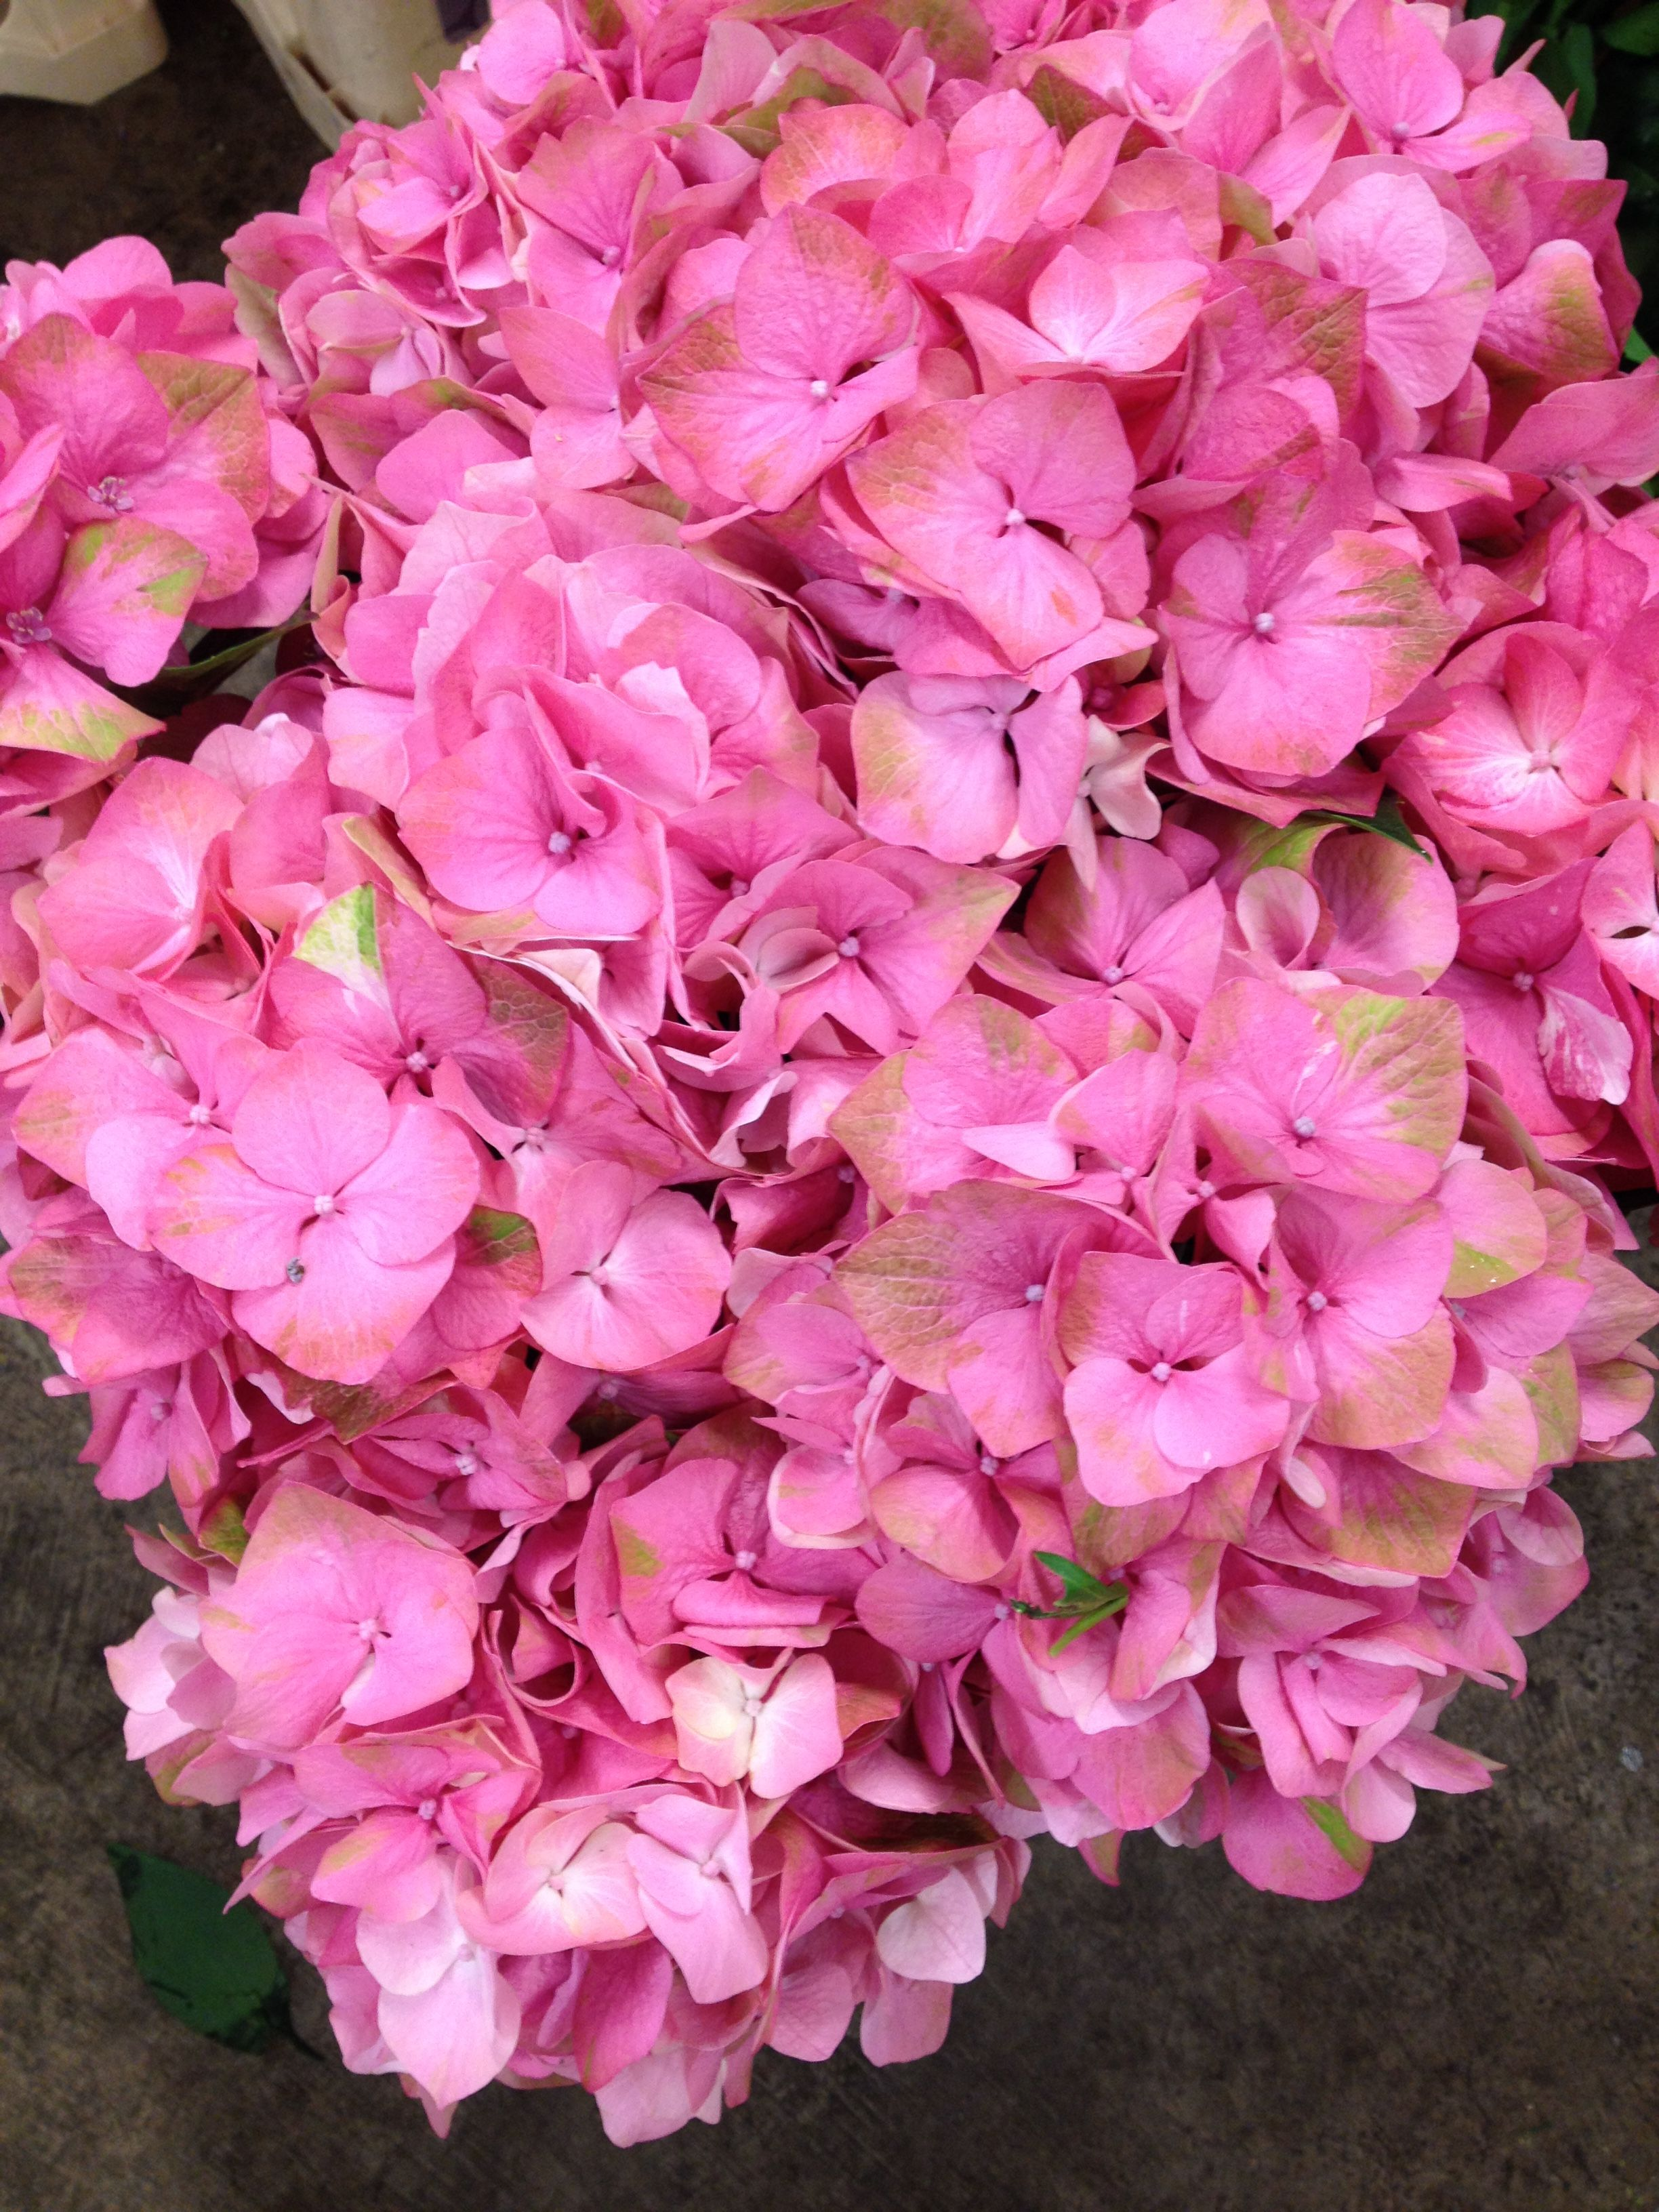 Hydrangea Called Mango Sold In Bunches Of Stems From The